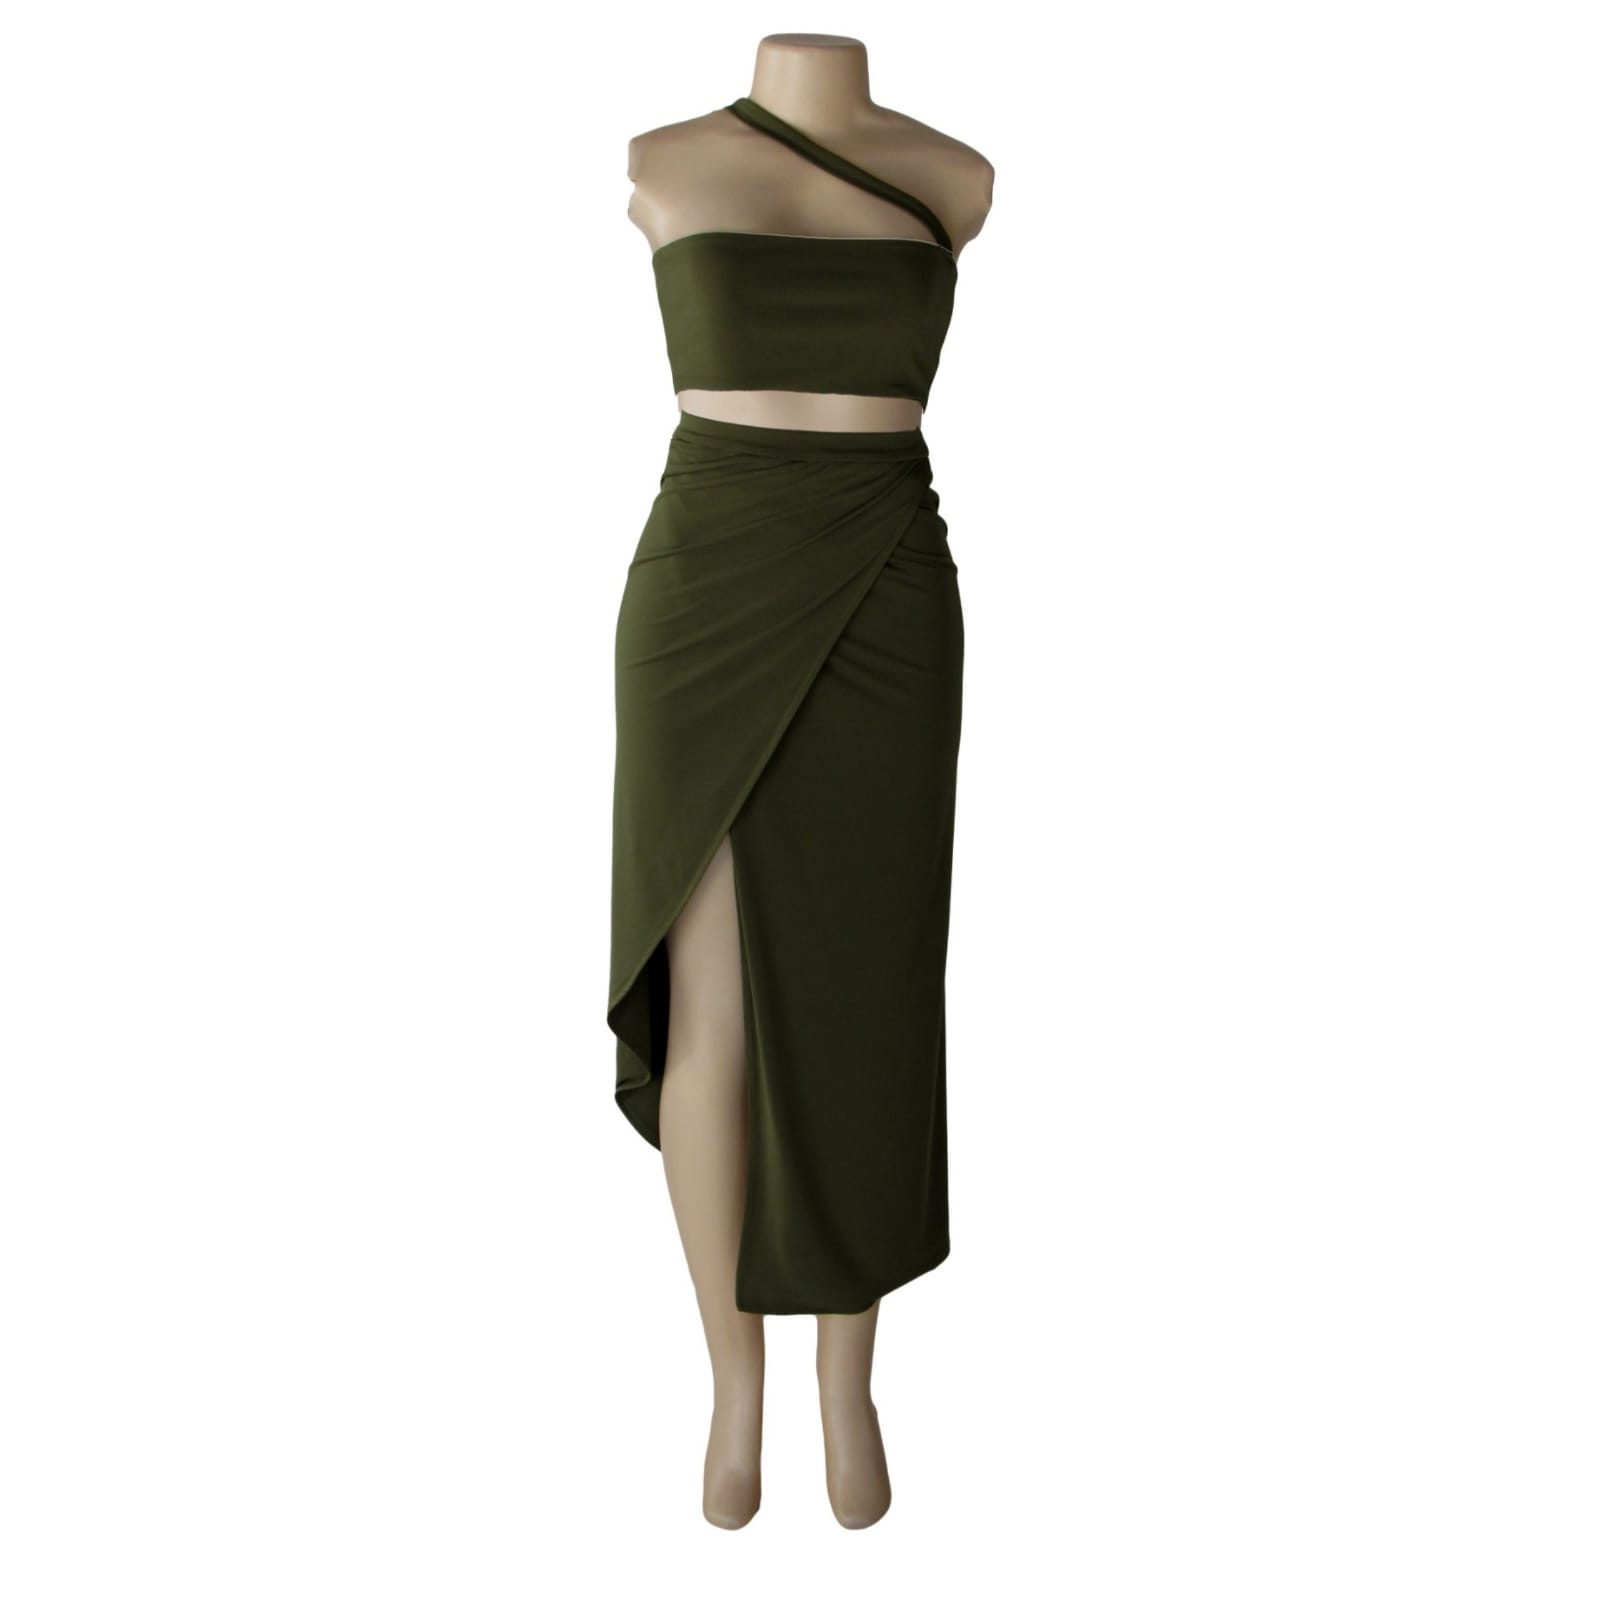 Army green 2 piece smart casual outfit 1 army green 2 piece smart casual outfit with a crop top and a crossed slit fitted skirt